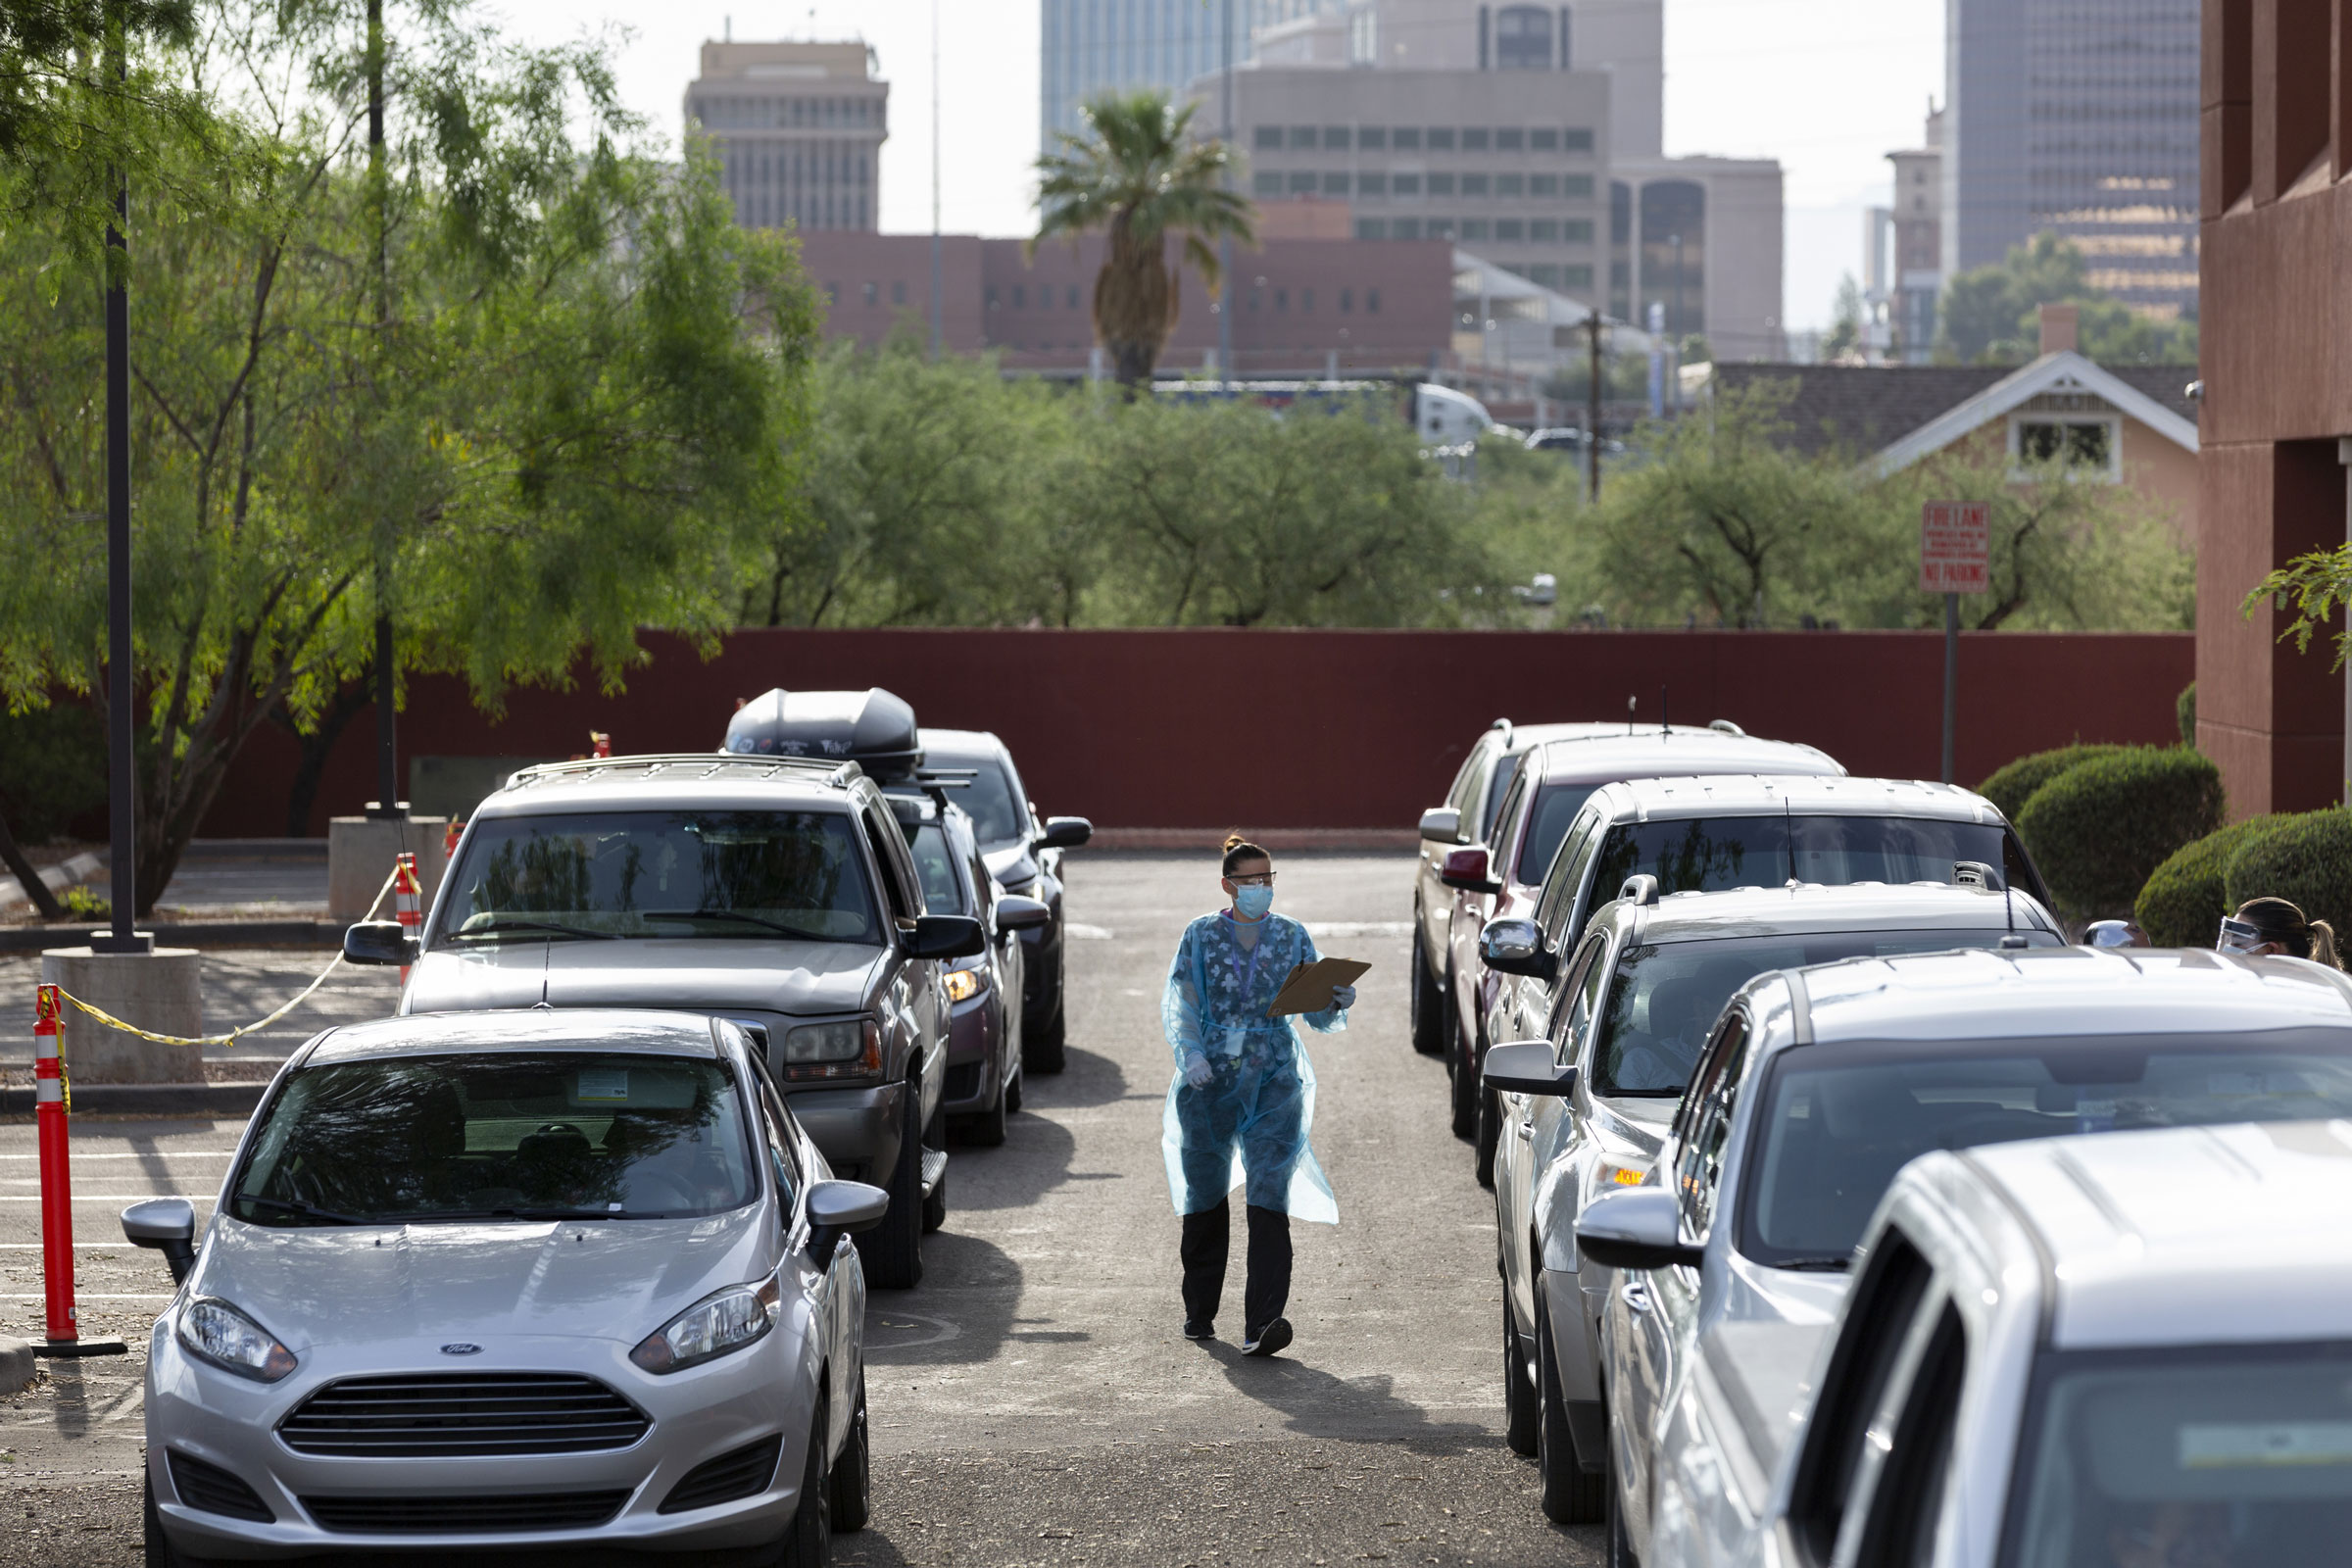 A health-care worker collects paperwork at a drive-thru testing site in Tucson, Arizona, on Monday.